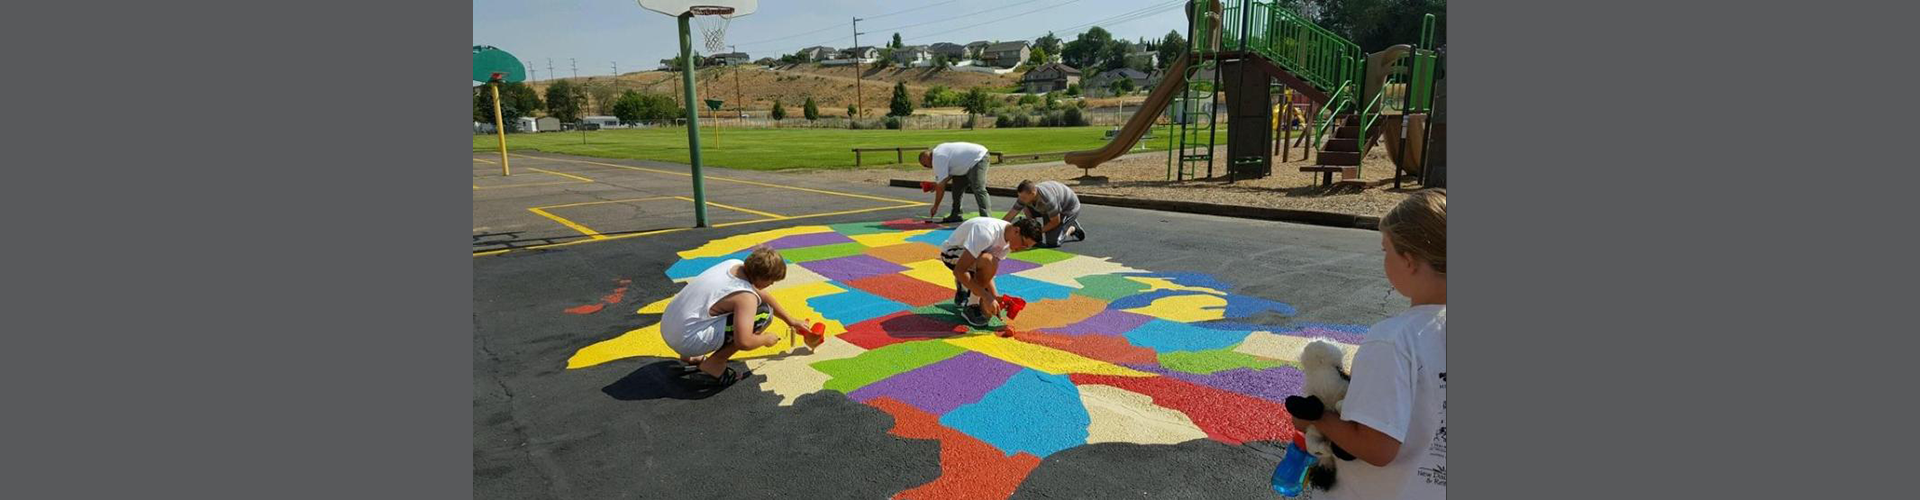 Playground map being painted